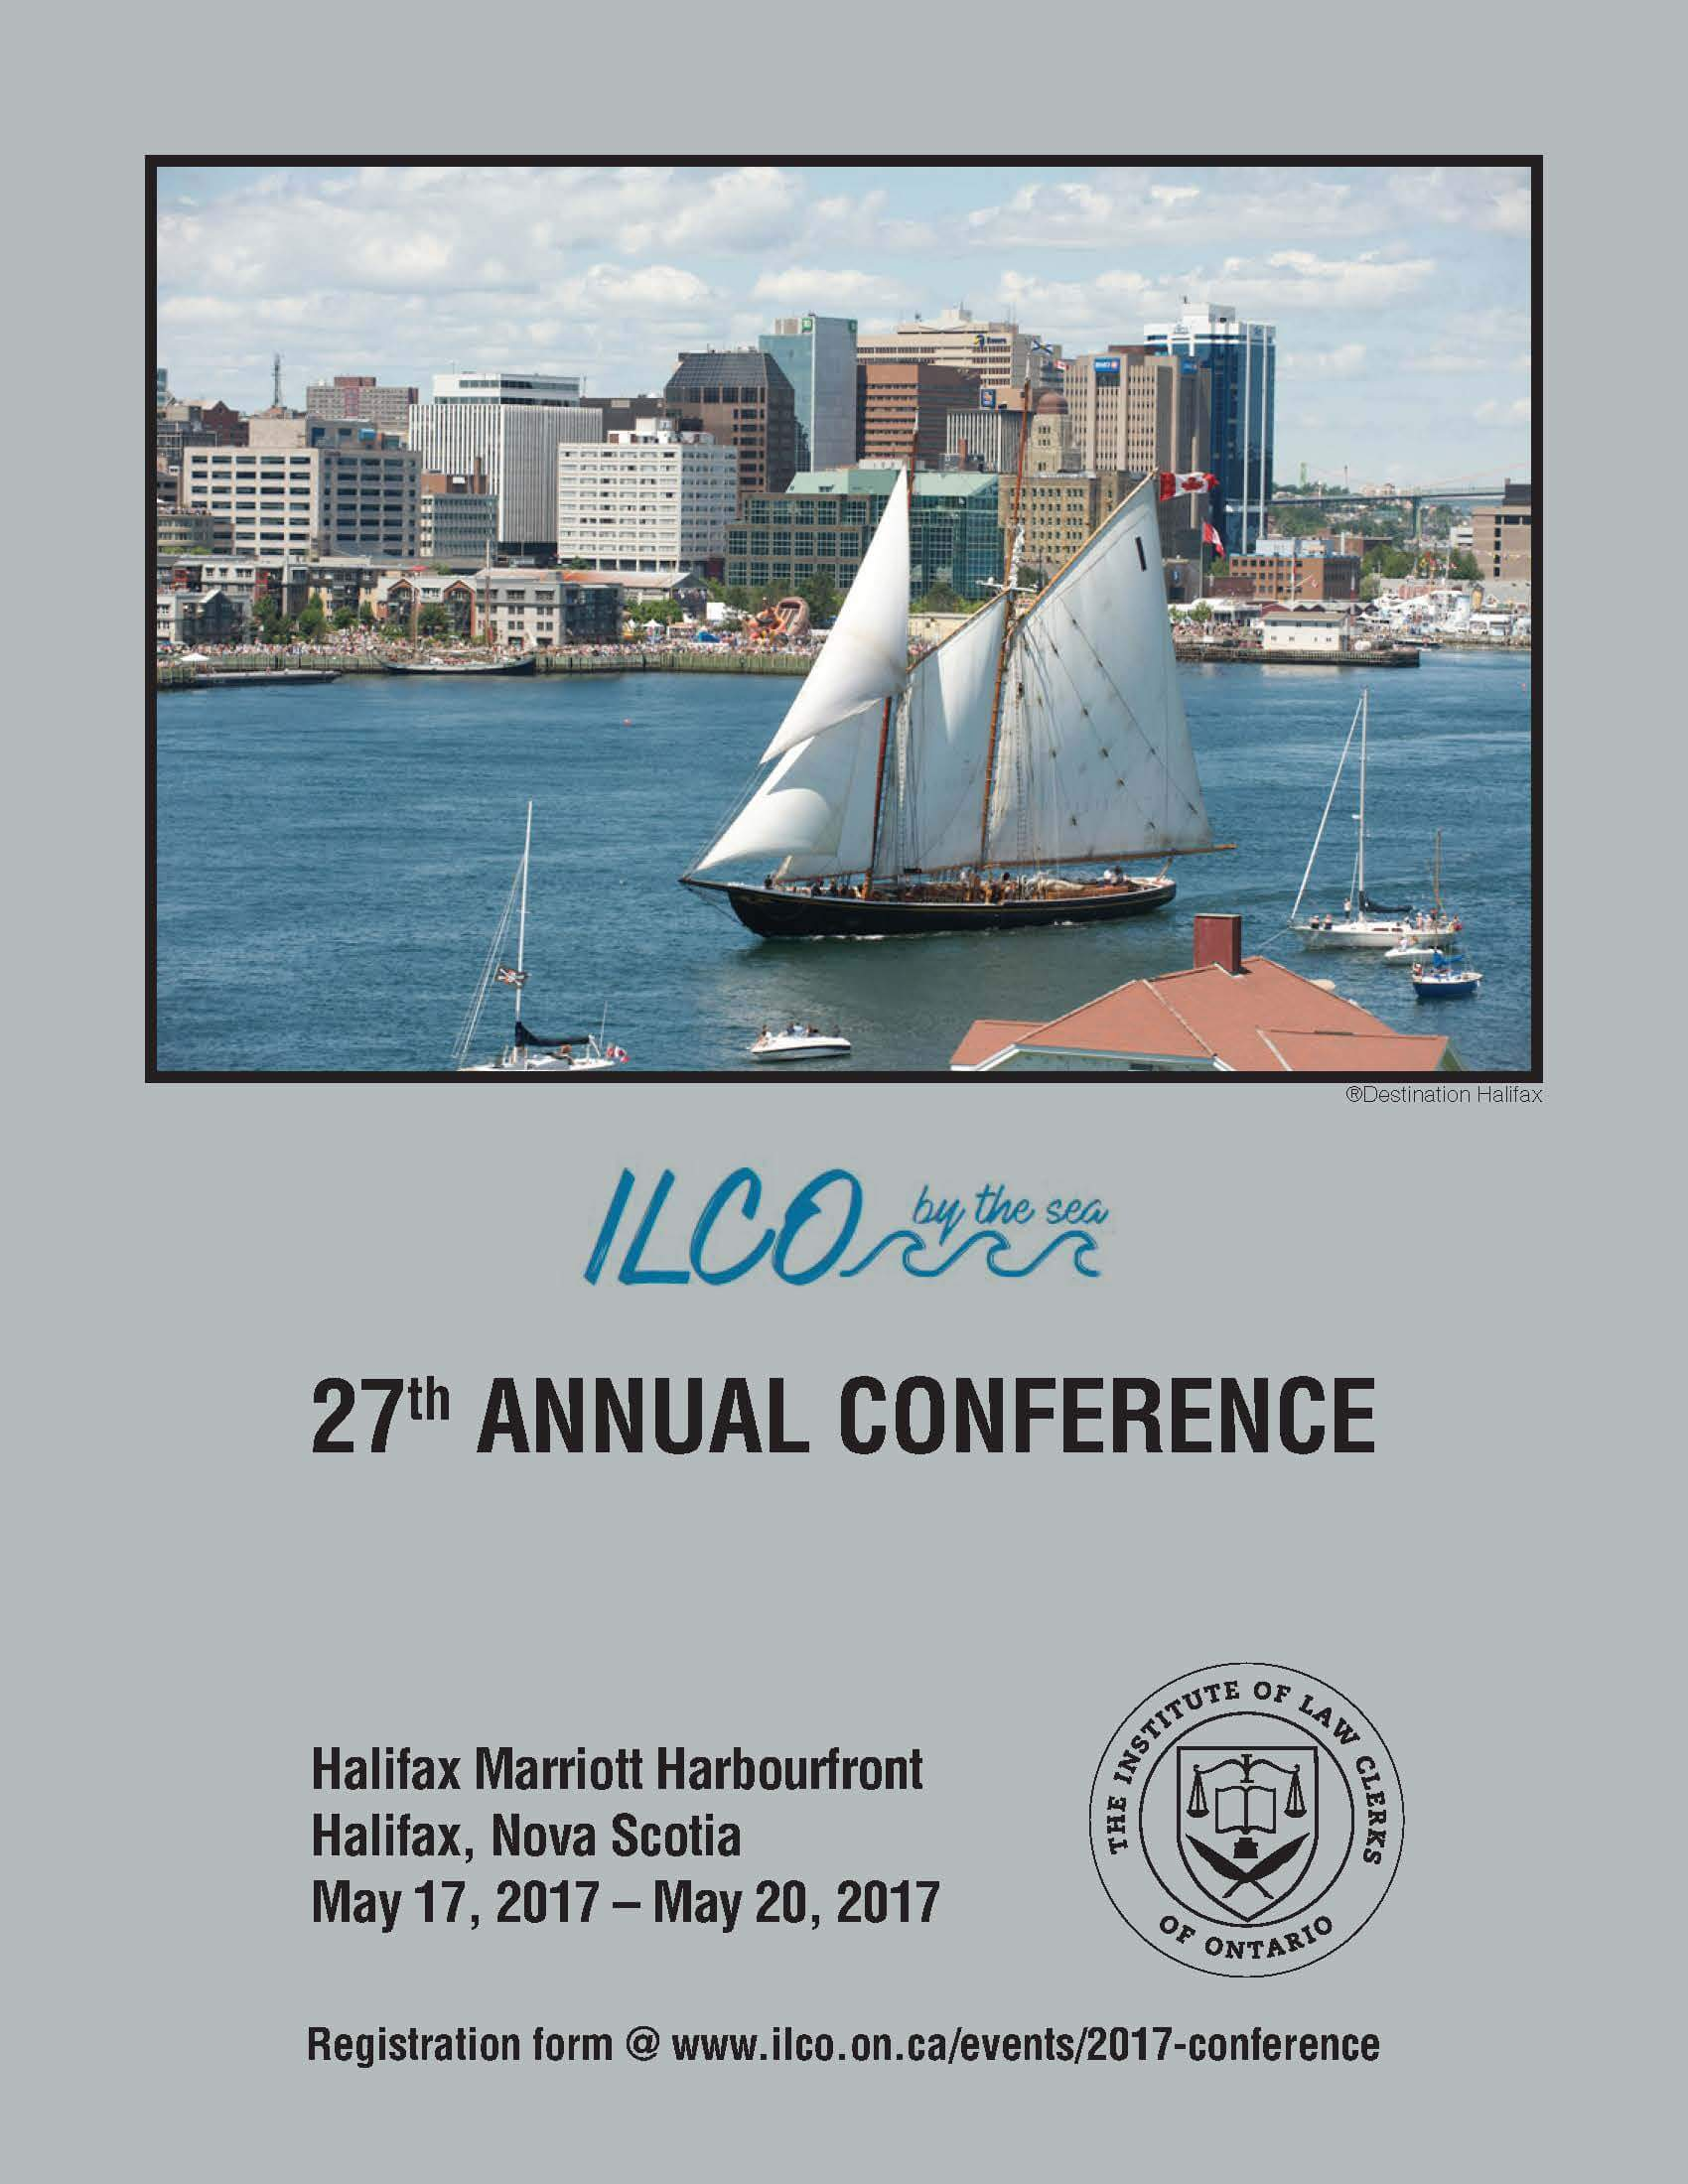 Conference Brochure Cover